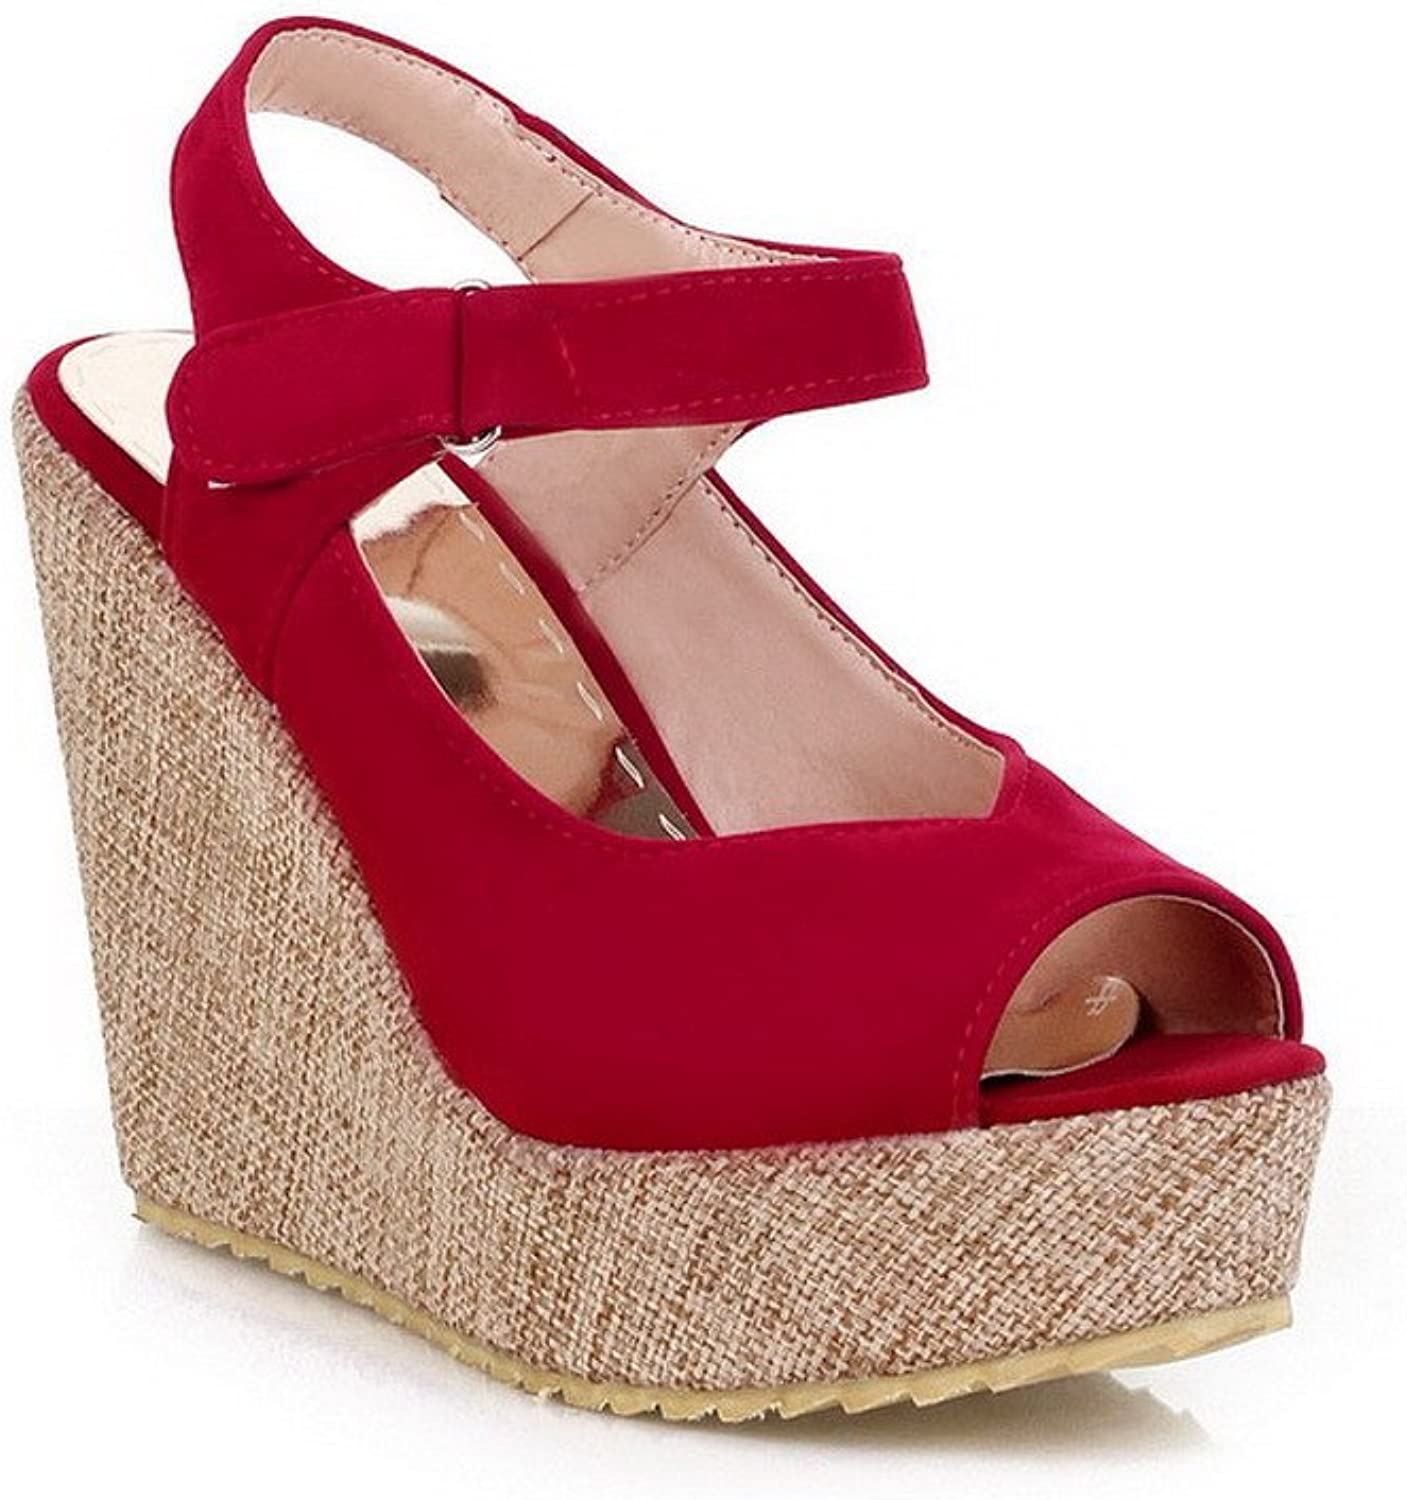 WeenFashion Women's Imitated Suede Solid Hook-and-Loop Peep Toe High-Heels Platforms & Wedges